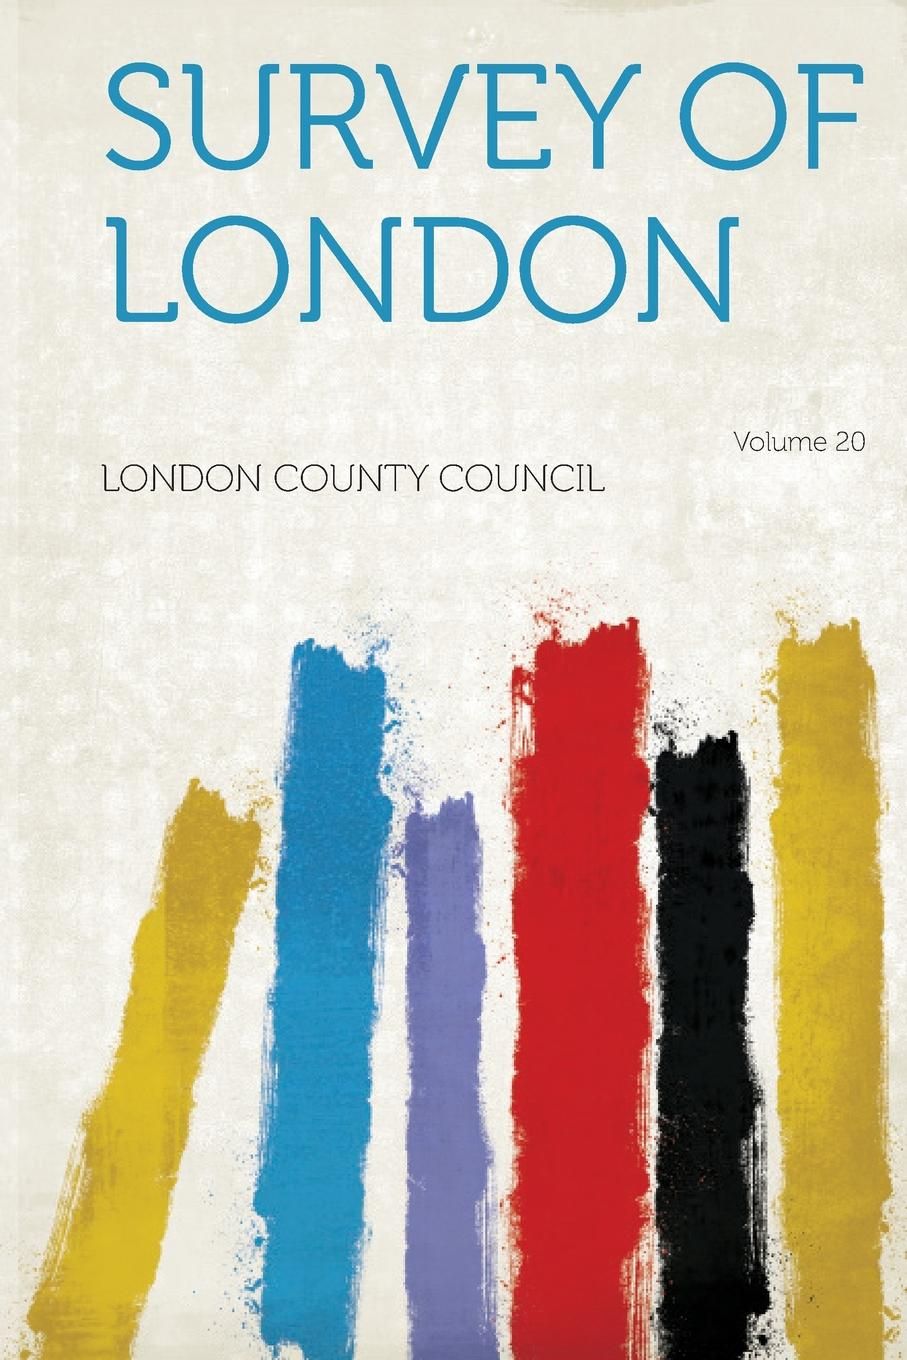 London County Council Survey of London Volume 20